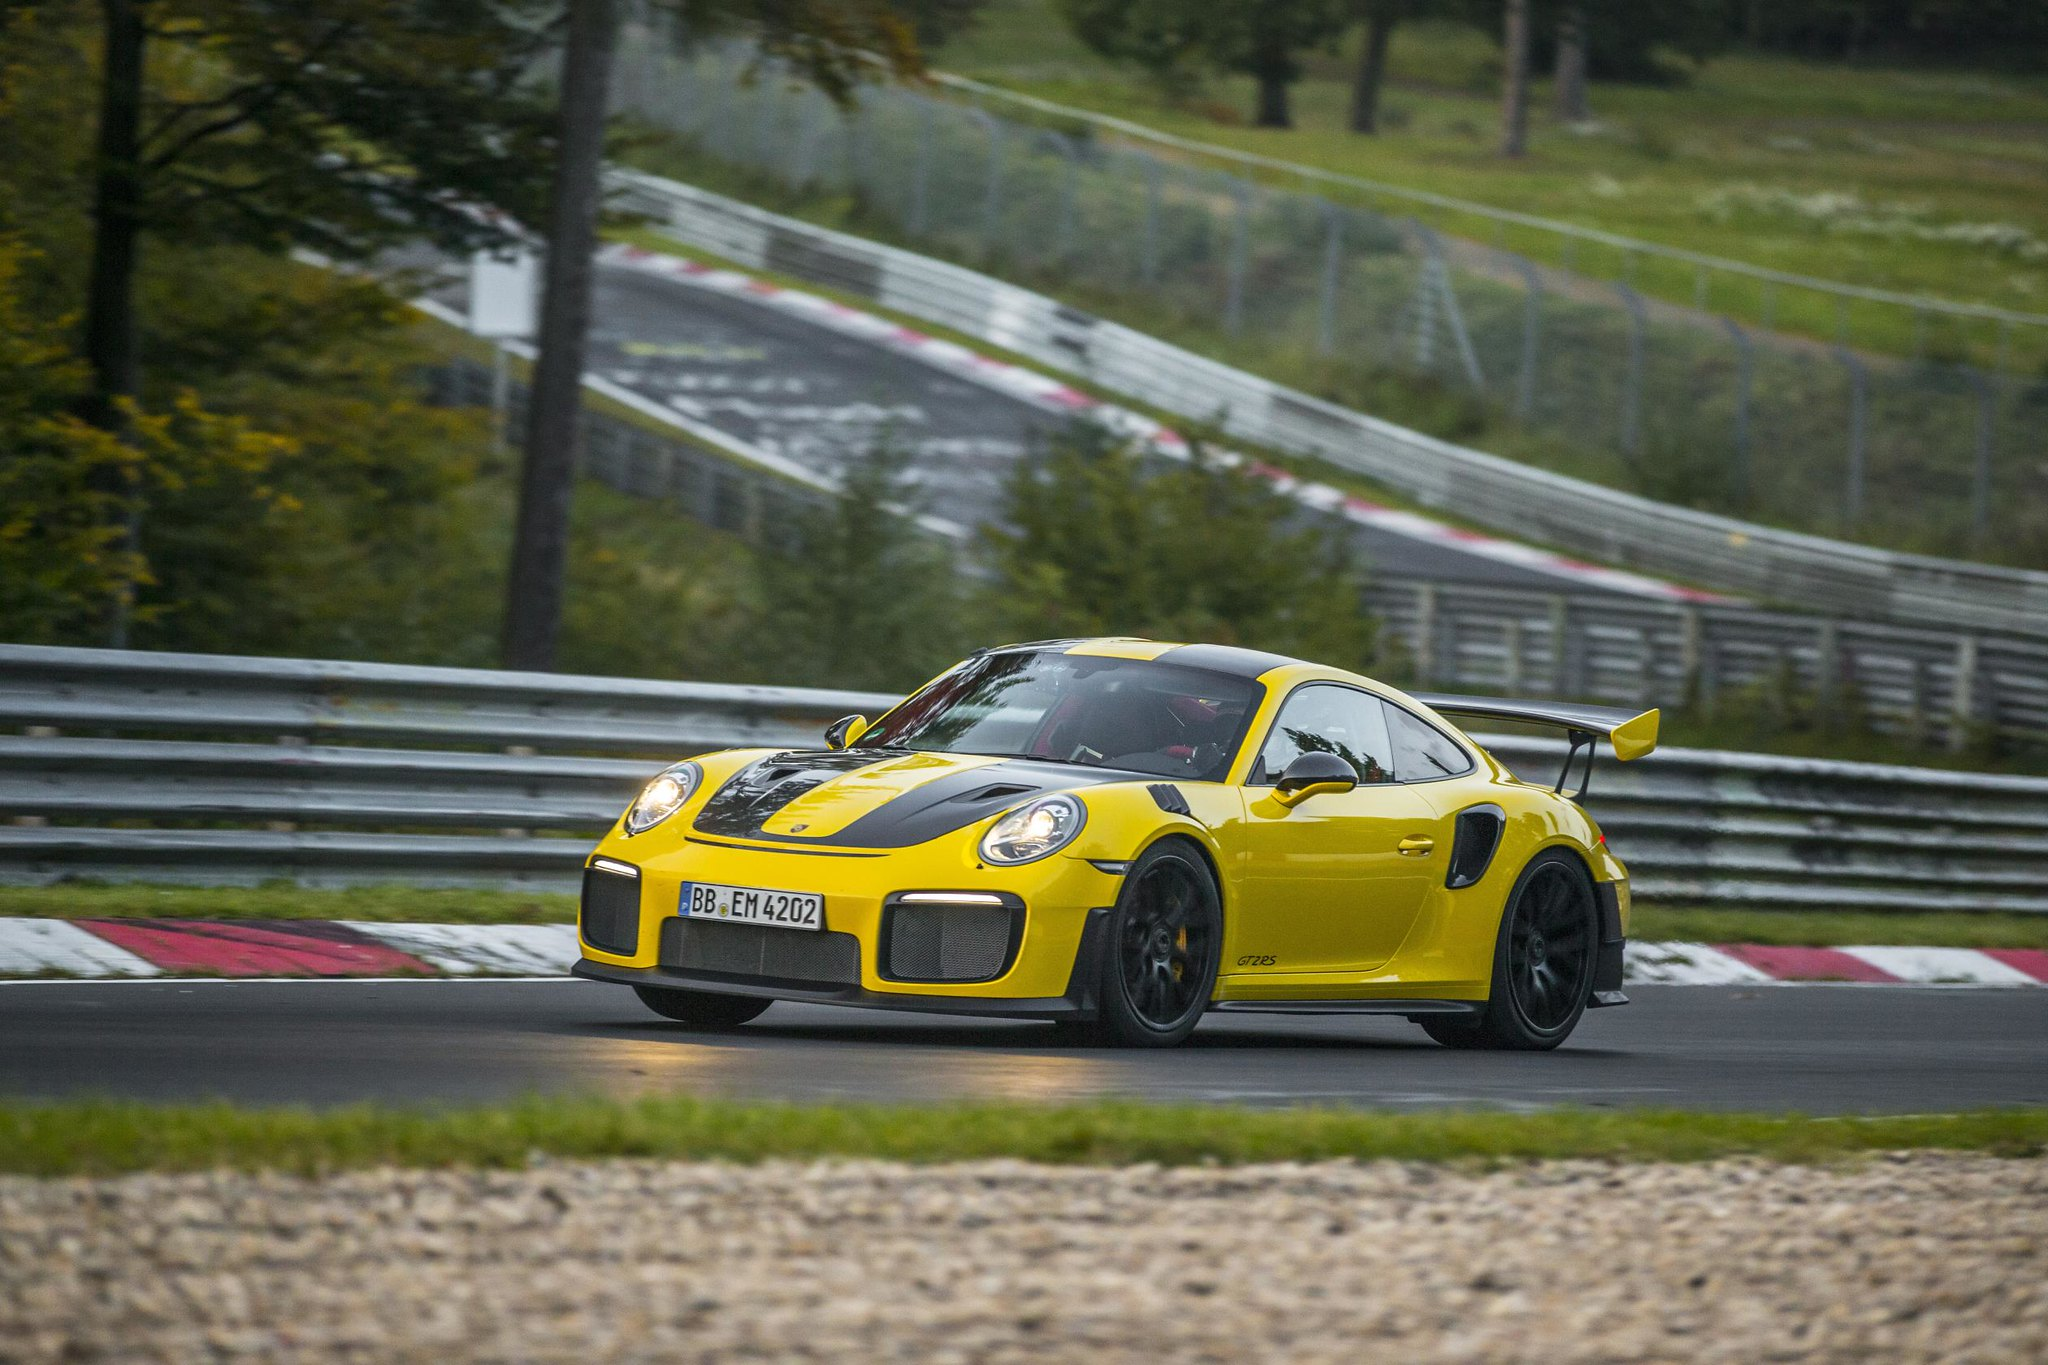 Porsche GT2 RS is the fastest 911 model of all time with 6:47.3 lap time